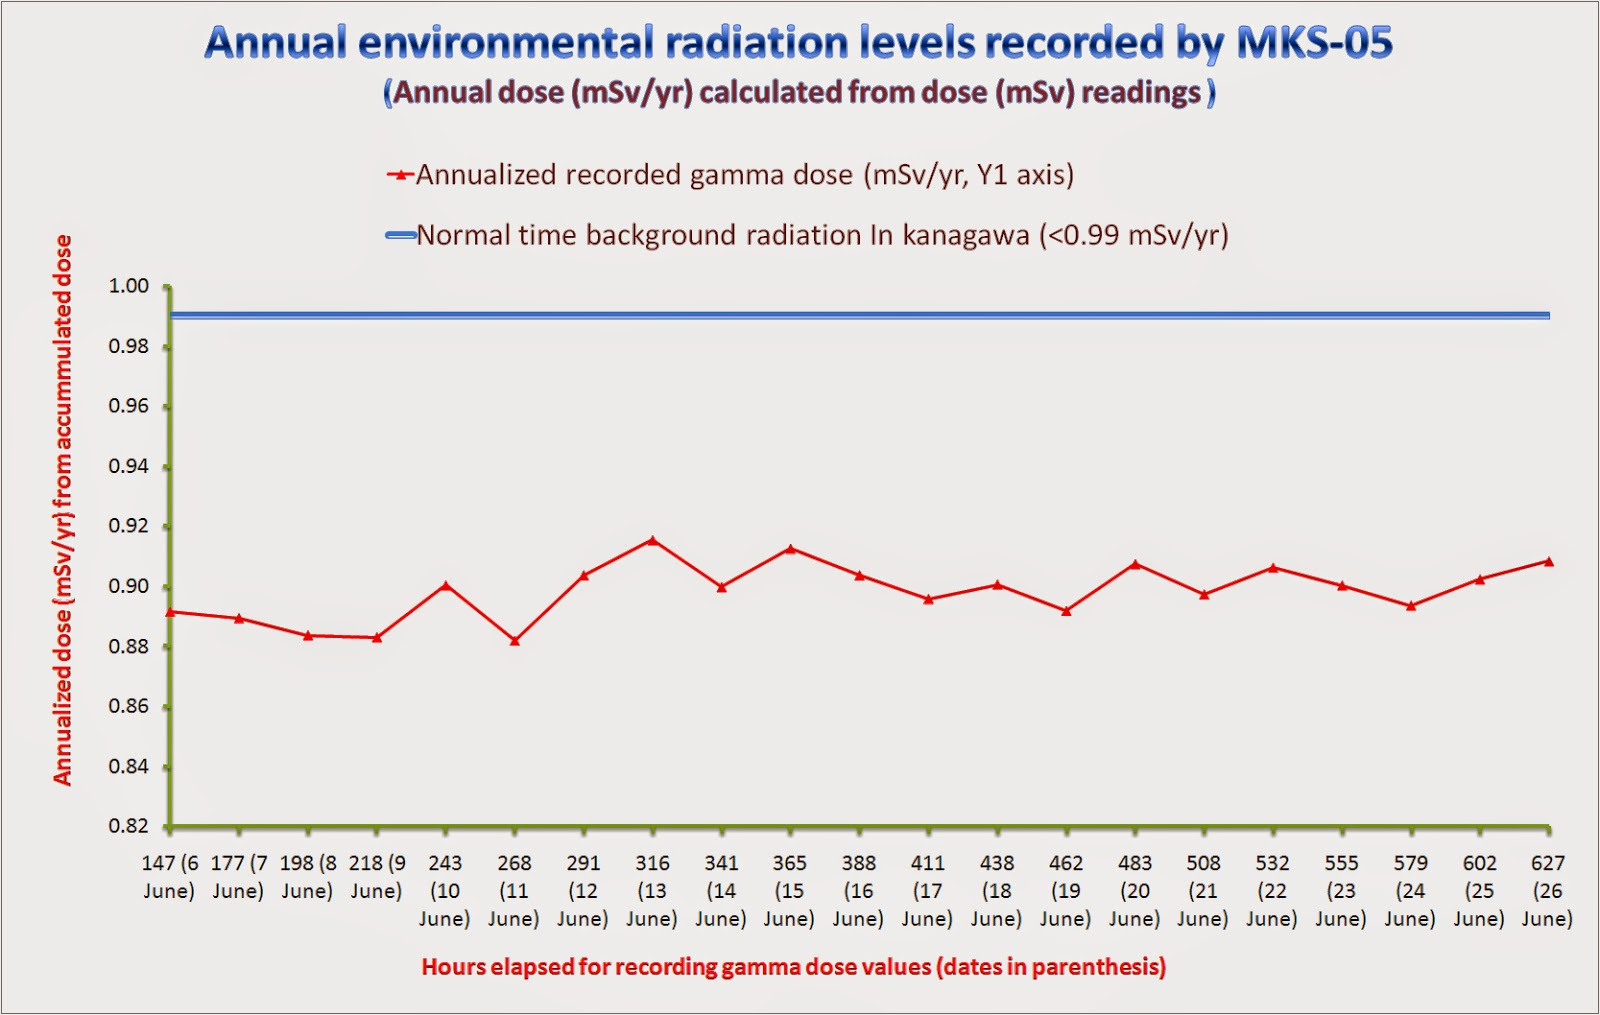 ... but below the normal time background radiation values in the long term.